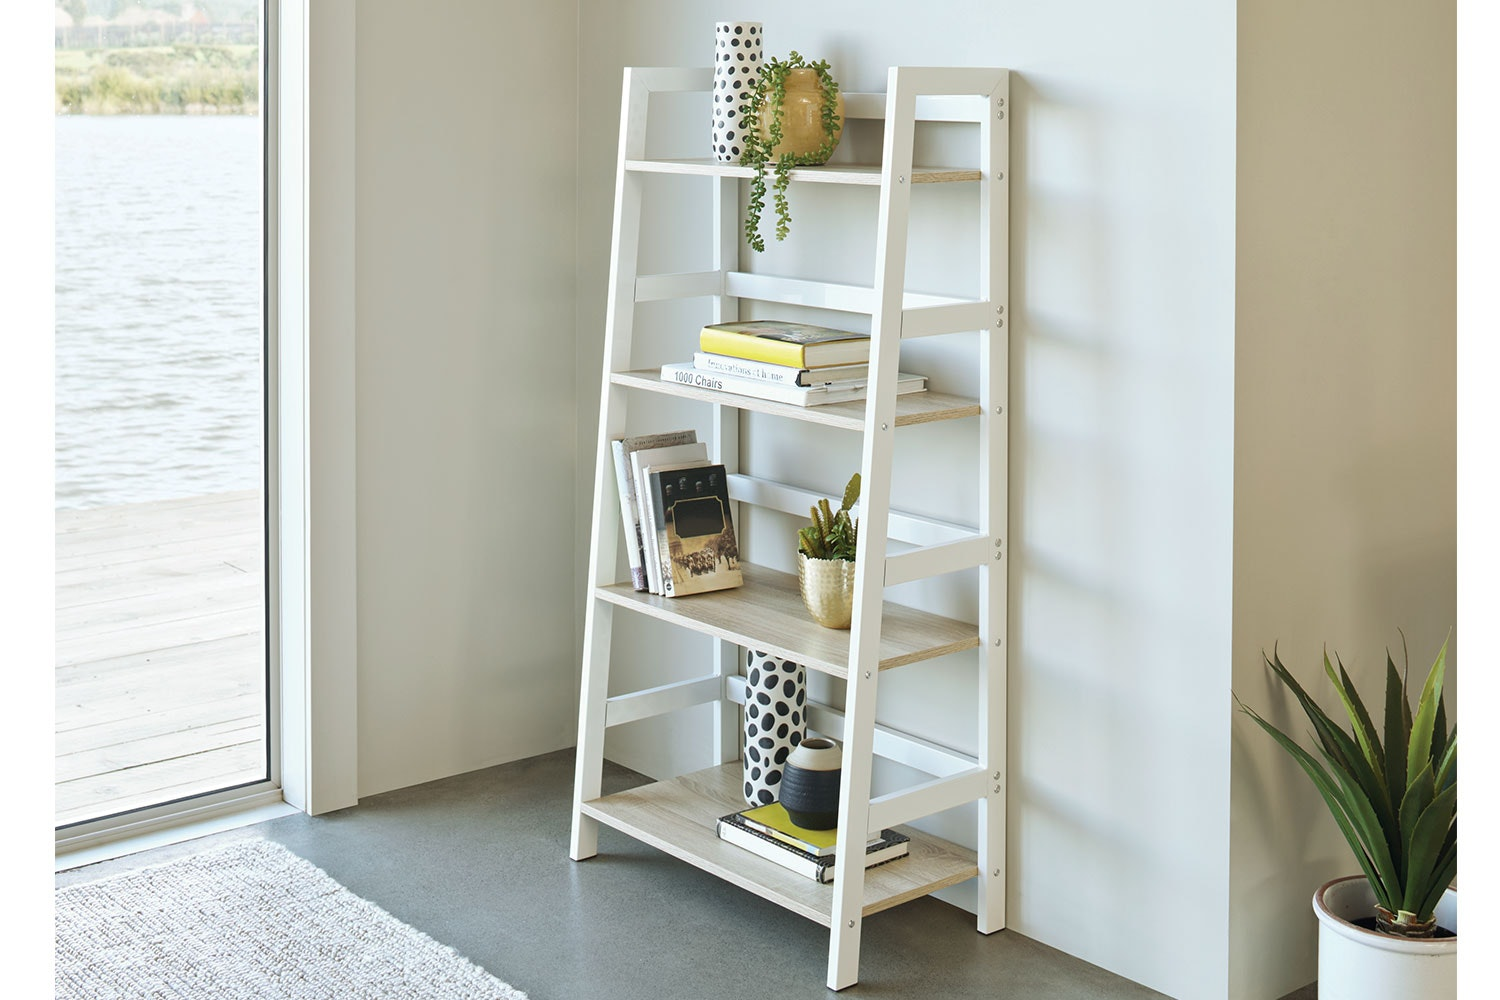 Legend High Bookcase